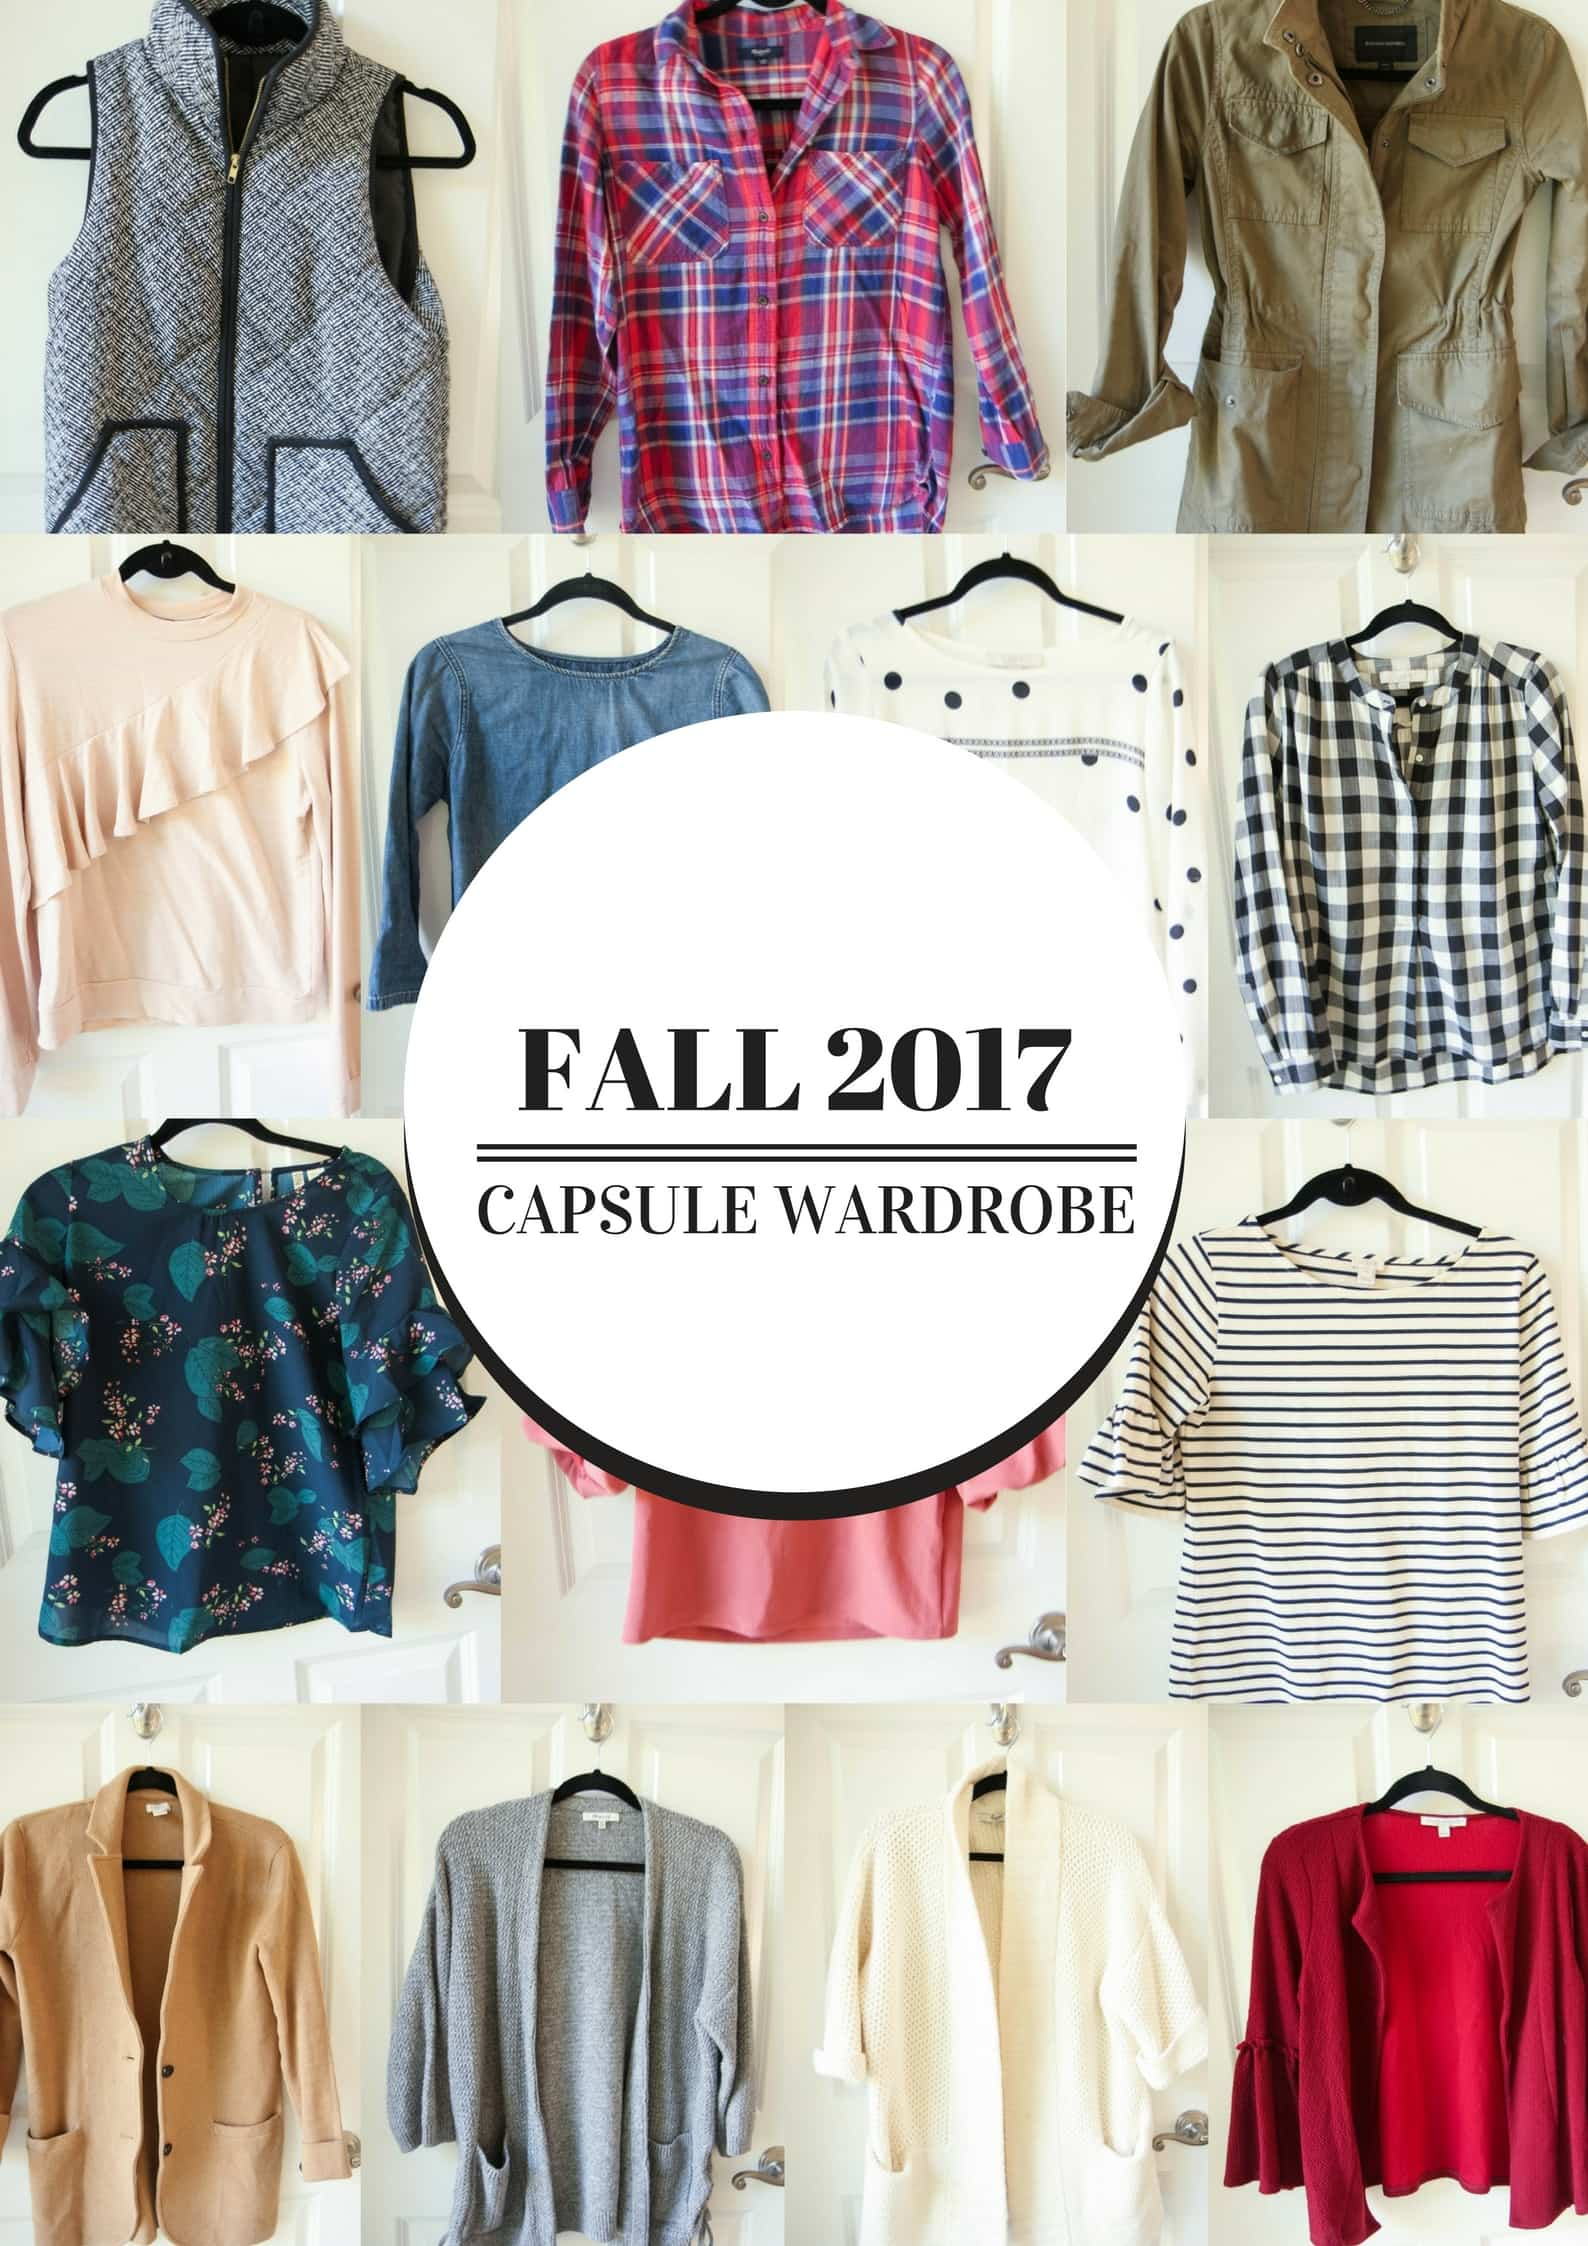 Fall 2017 Capsule Wardrobe from MomAdvice.com